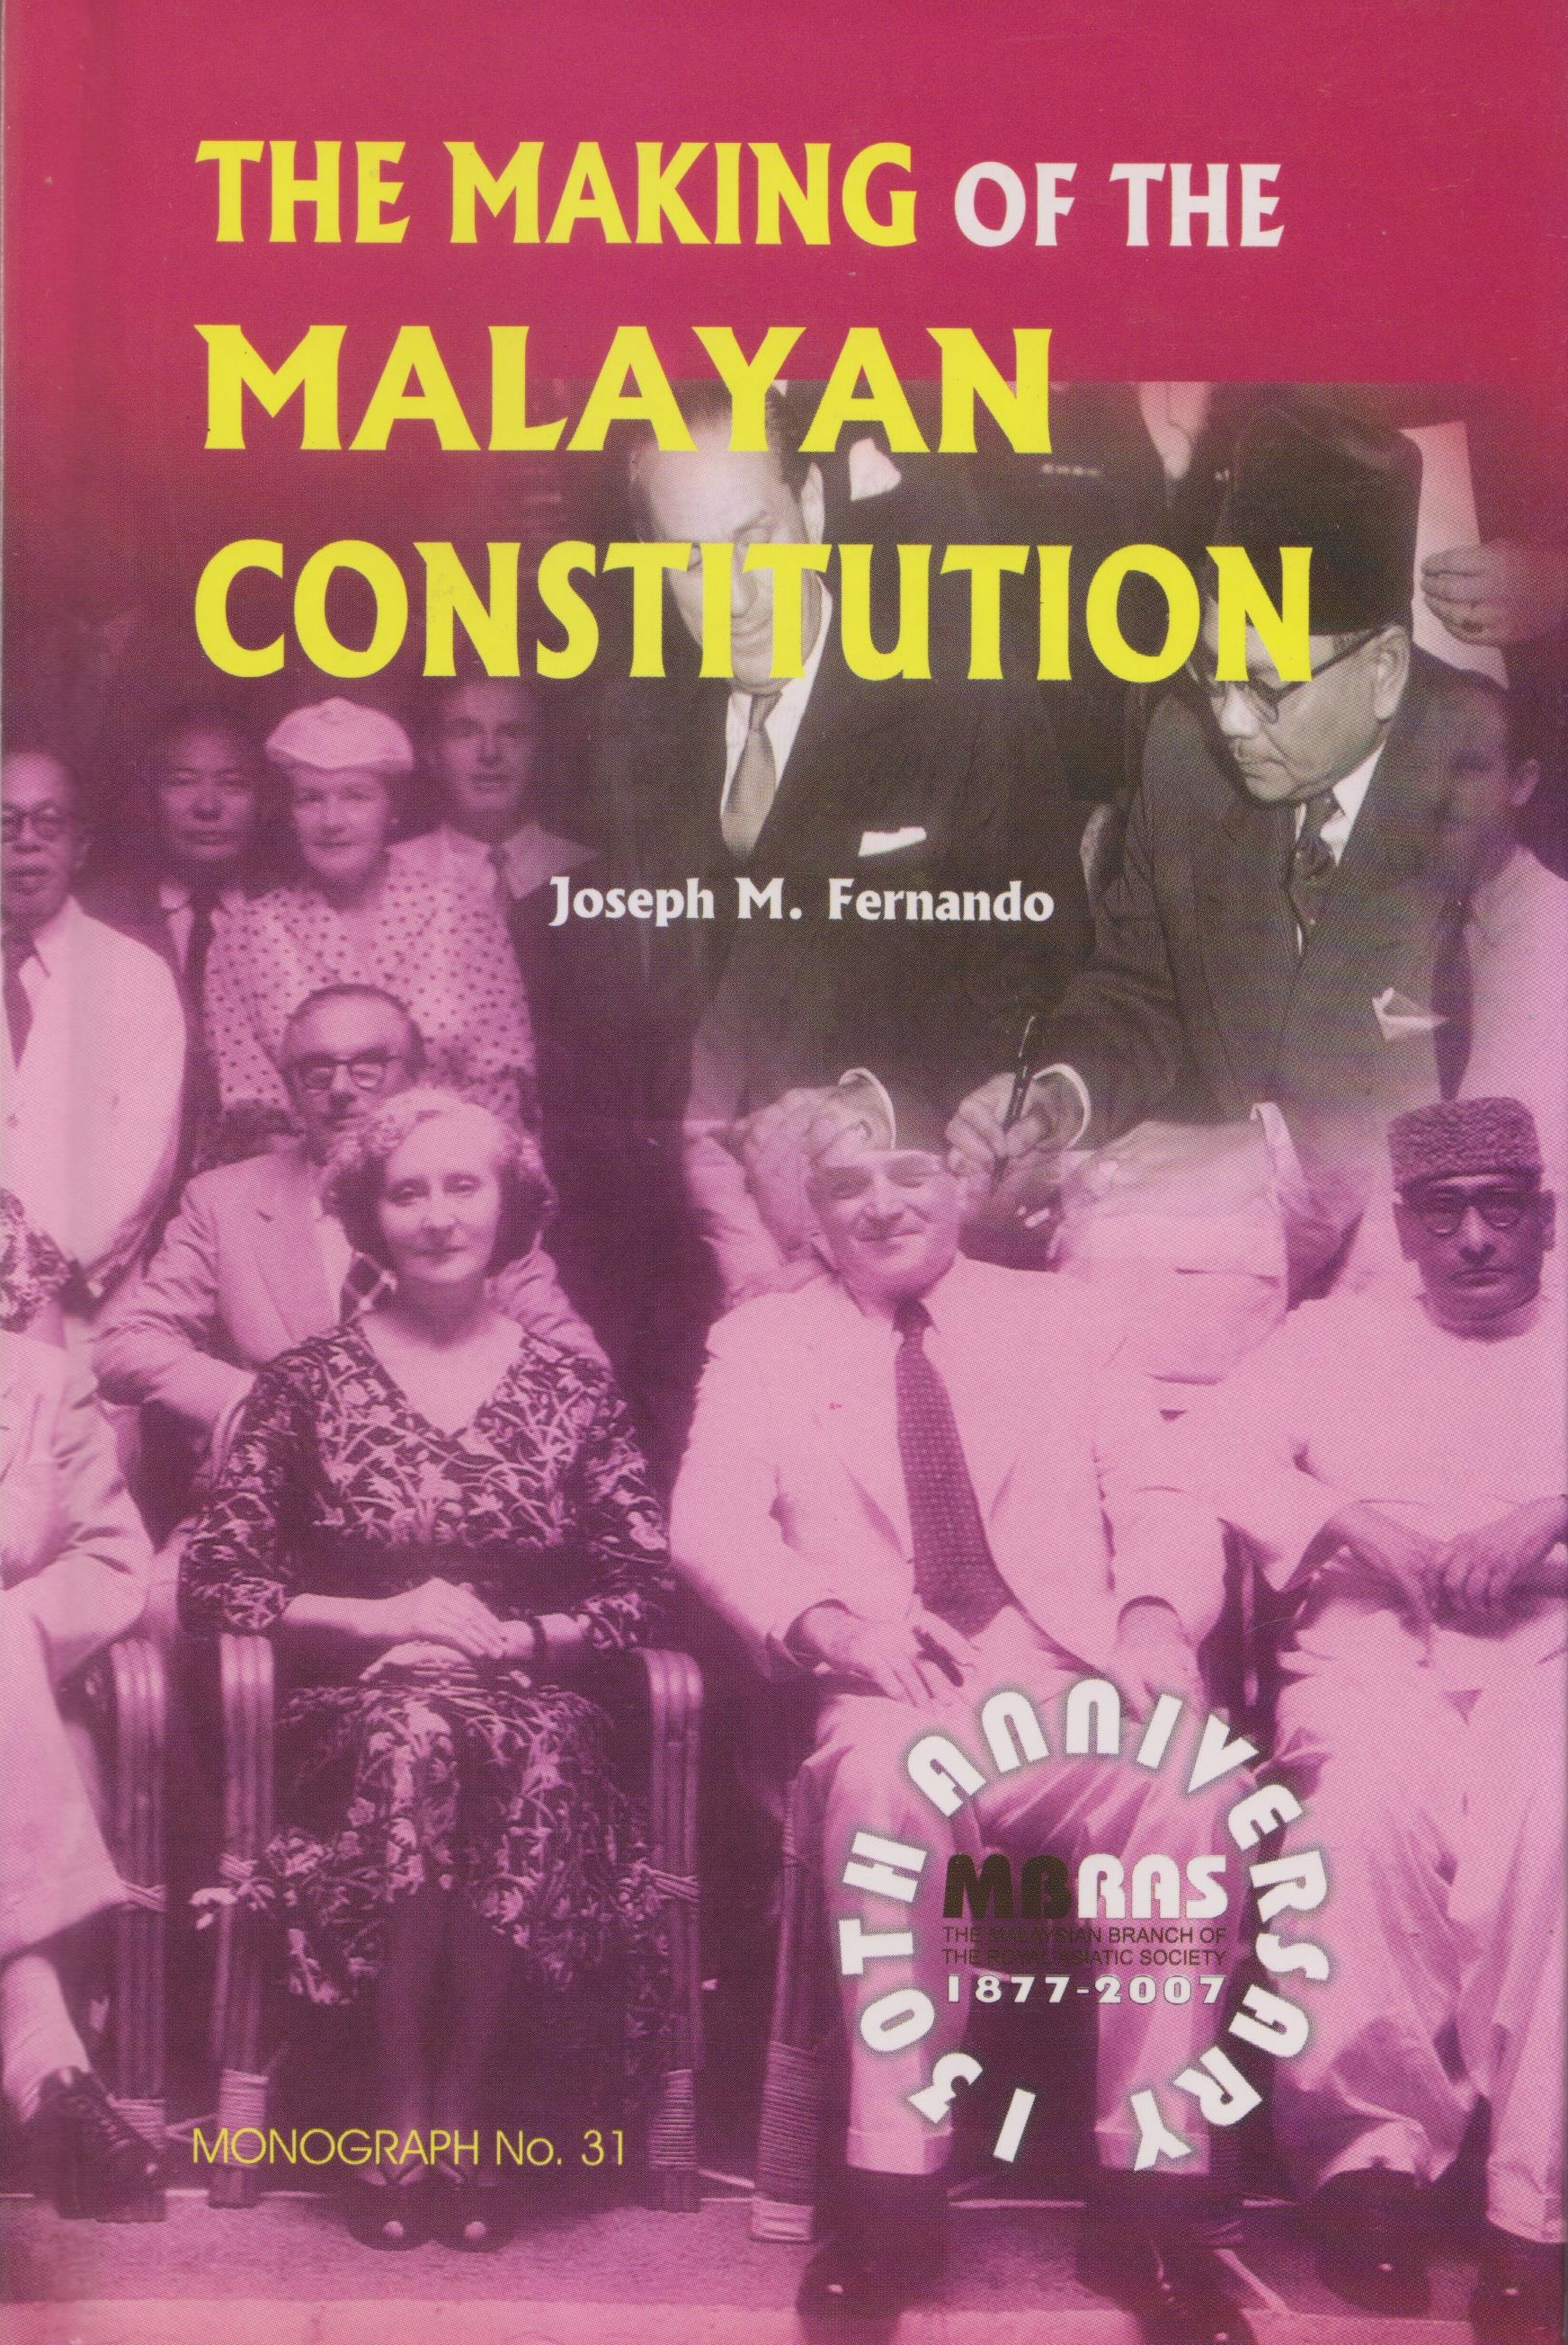 The Making of the Malayan Constitution